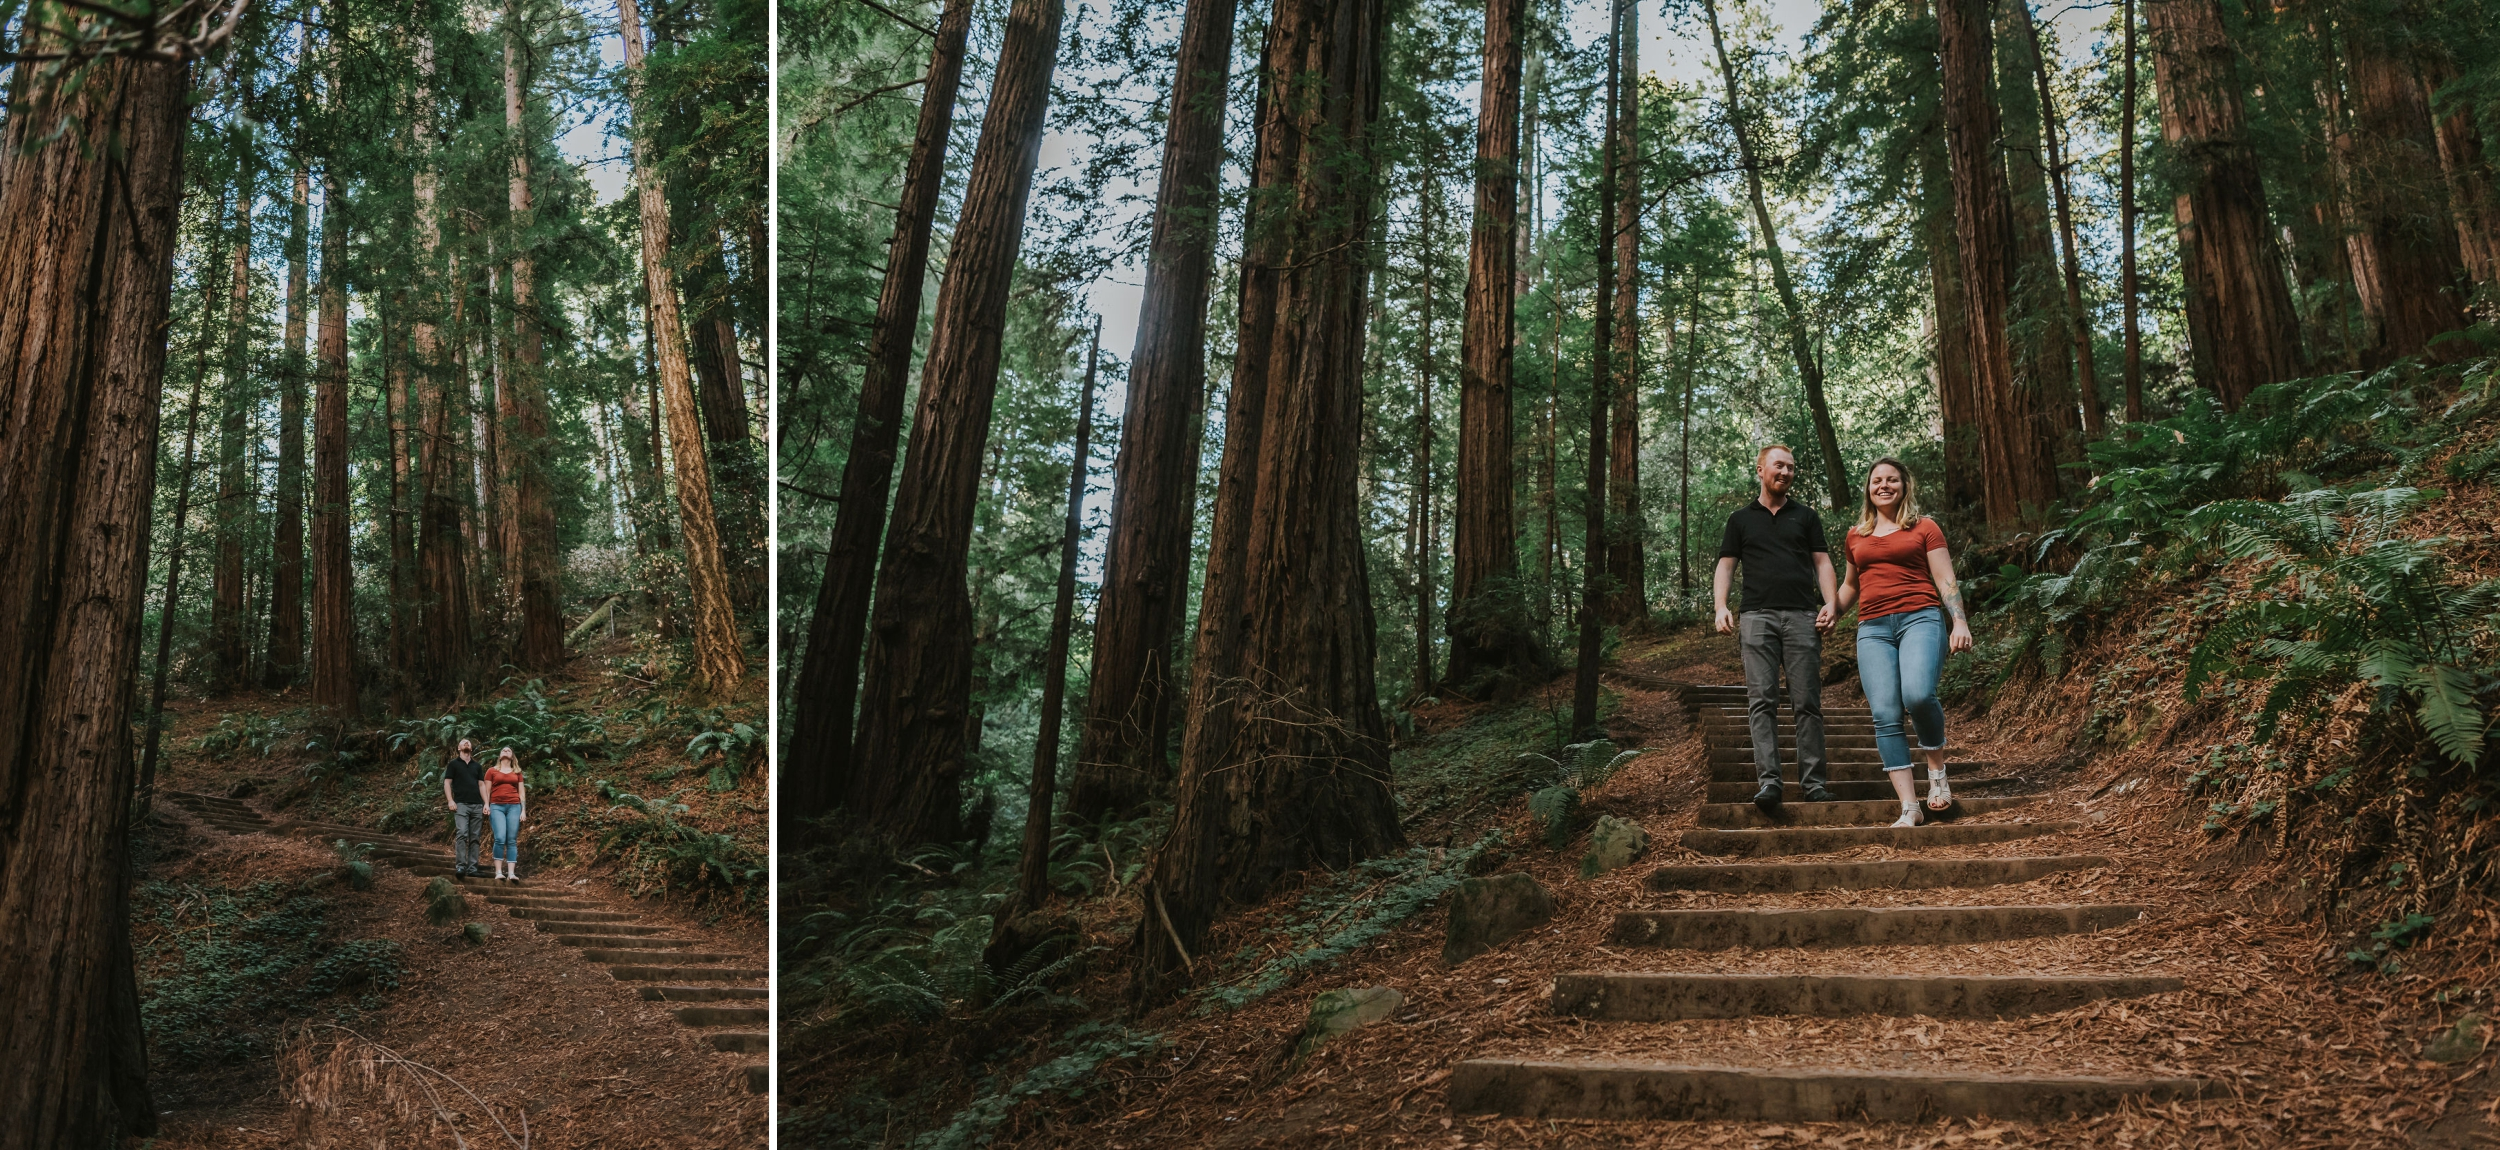 Hannah & Wesley - Muir Woods San Francisco Couples Session 07.jpg